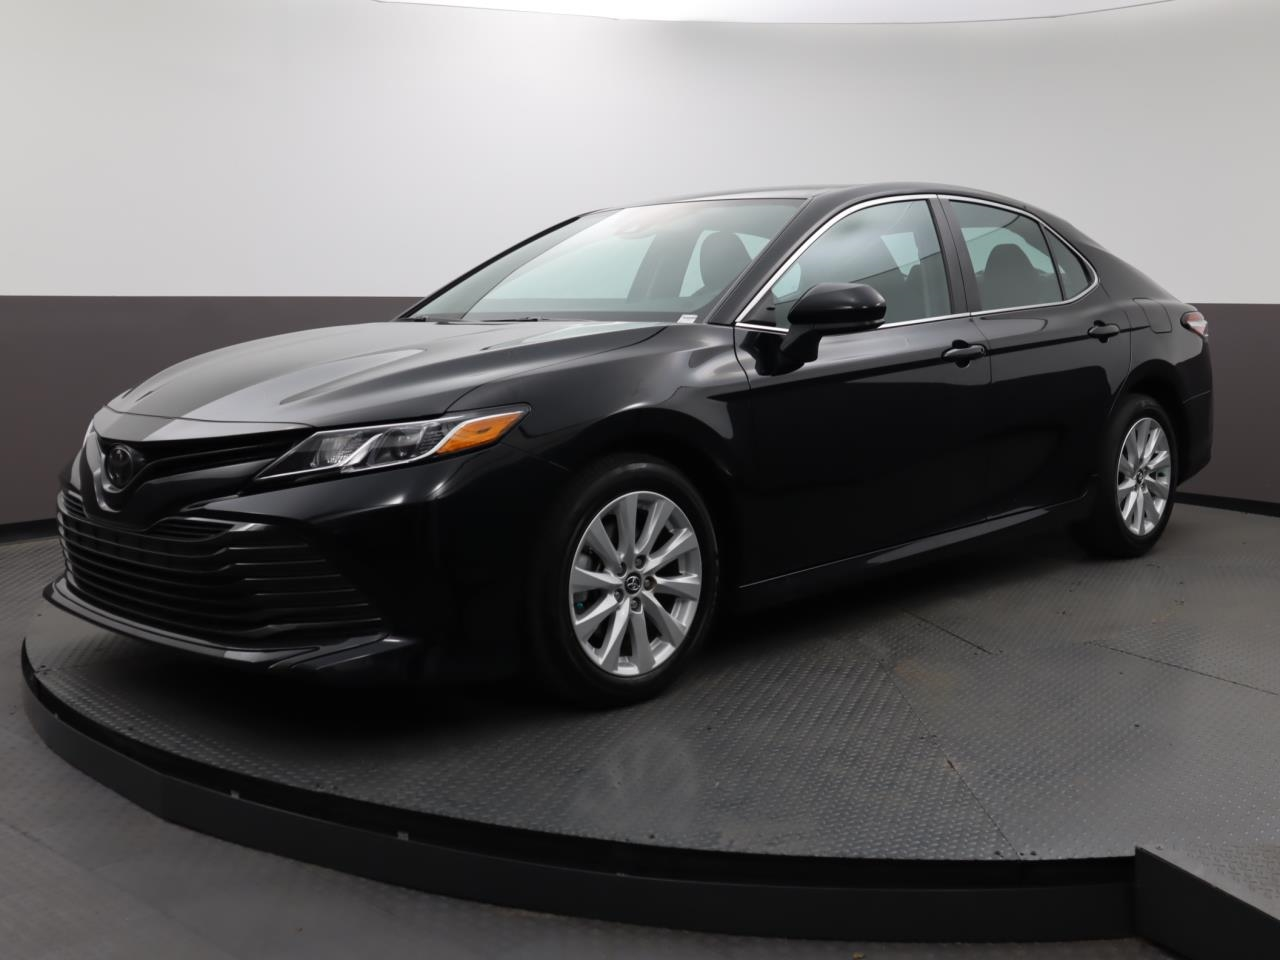 Used TOYOTA CAMRY 2020 MARGATE LE